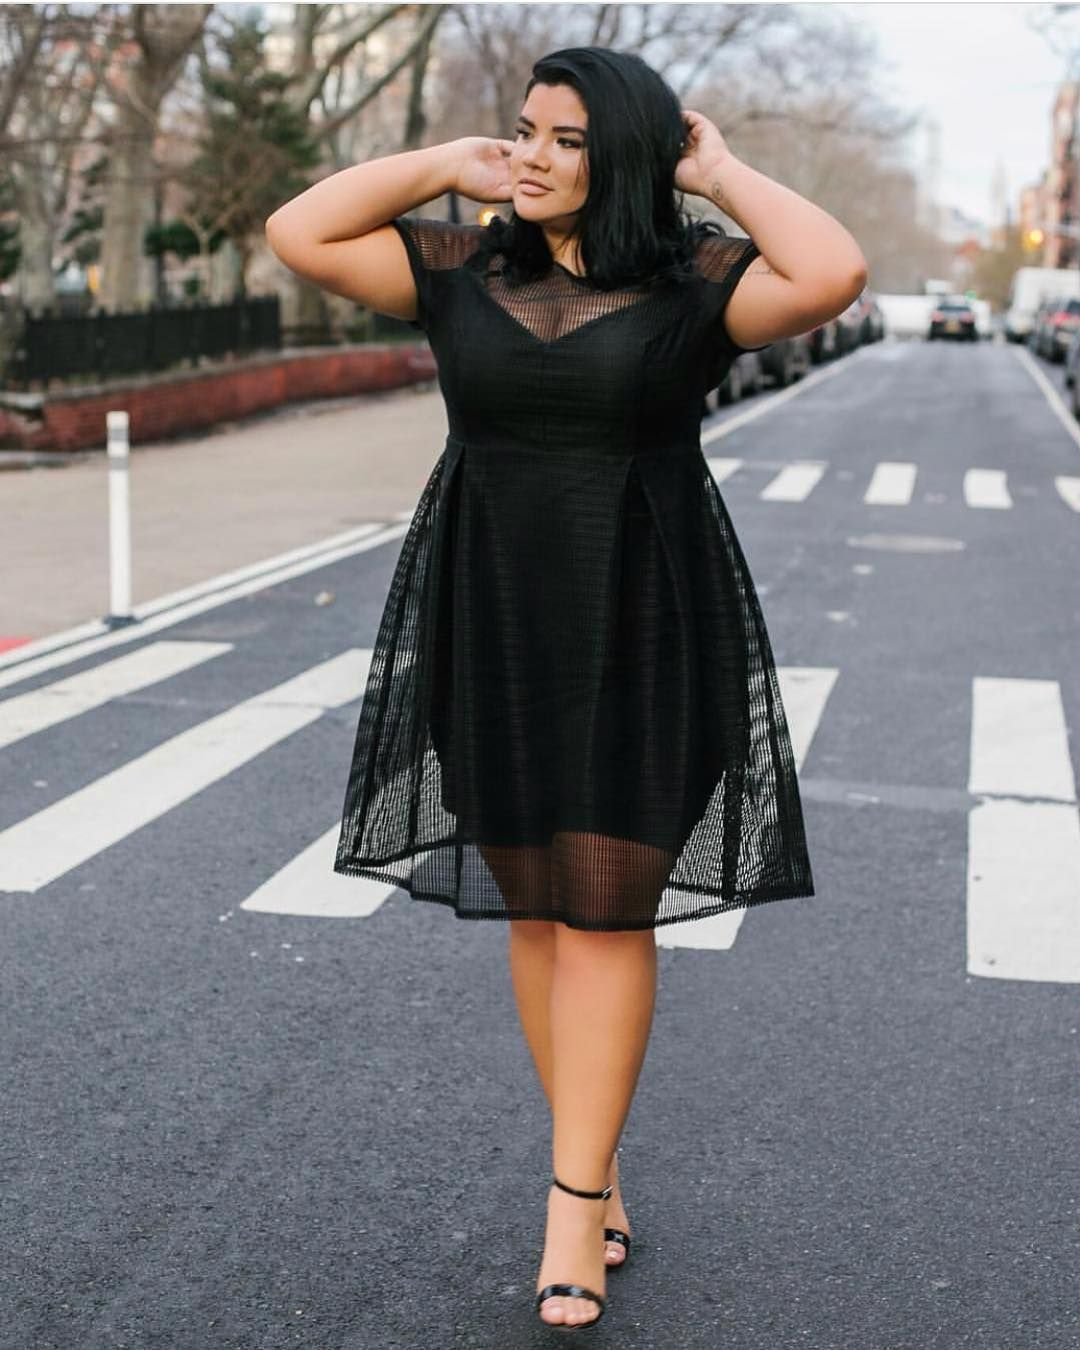 One Is Never Over Dressed Or Under Dressed With A Little Black Dress Fashion Dress Plus Size Black Dresses Plus Size Fashion Plus Size Fashion For Women [ 1350 x 1080 Pixel ]